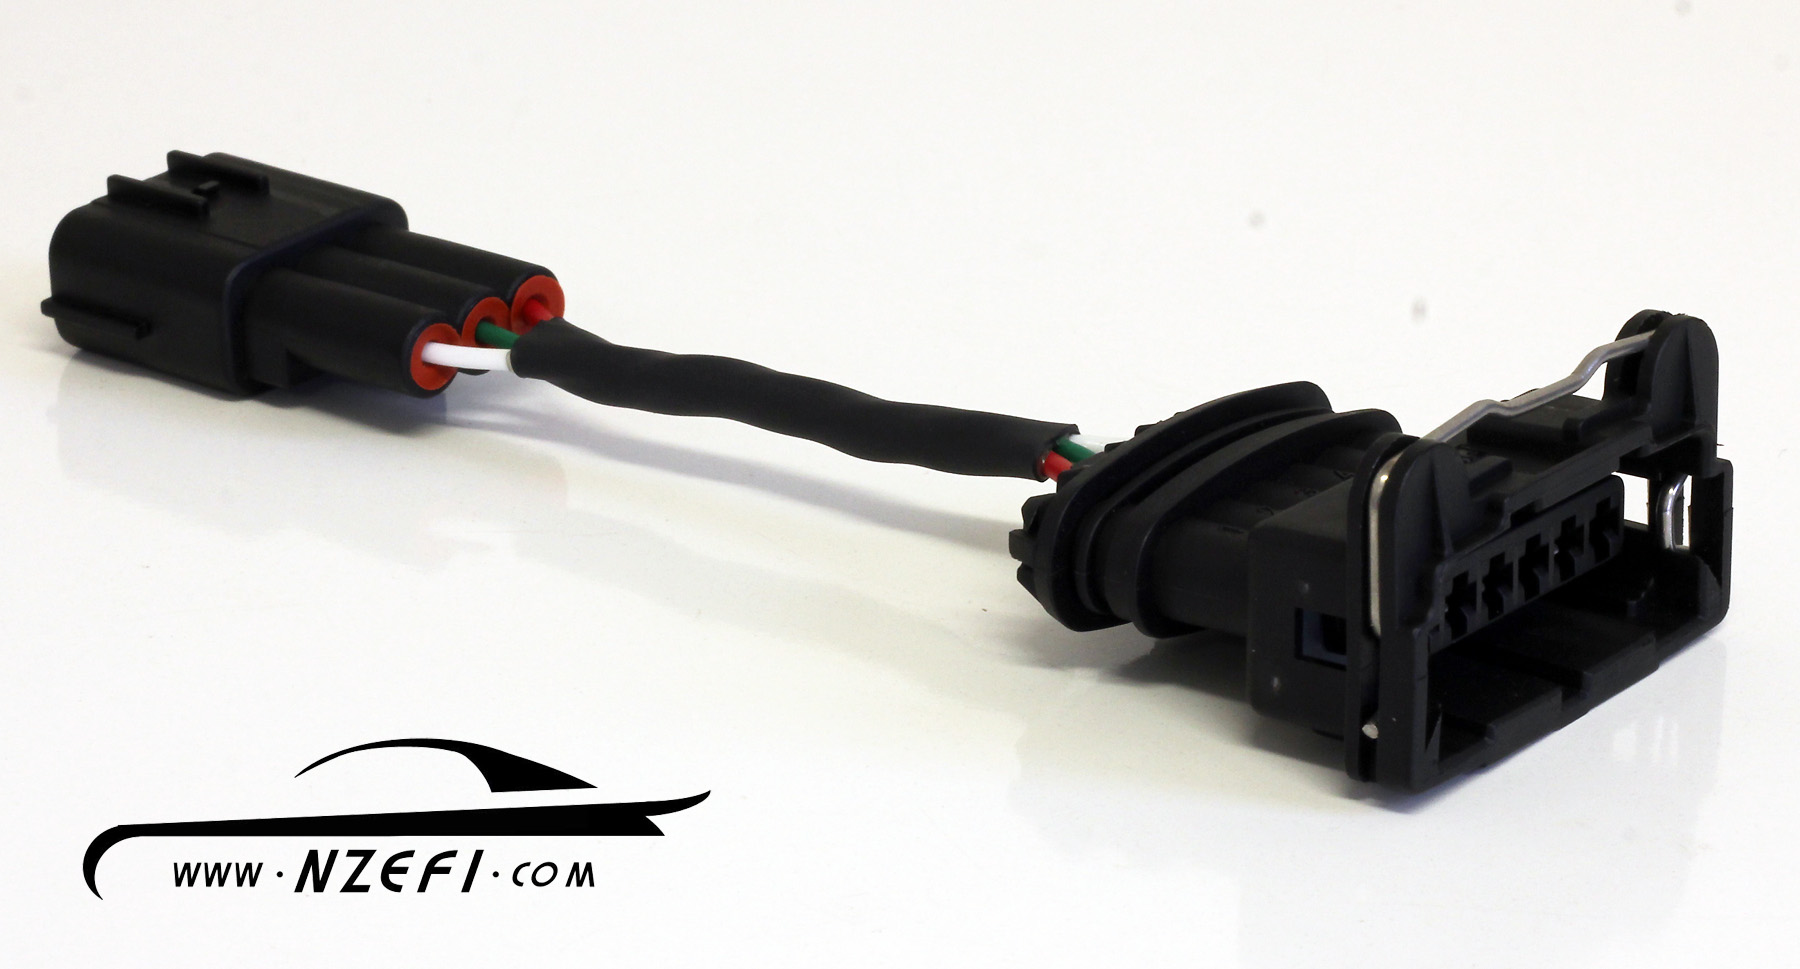 Afm Adapter Harness Rb25det S2 And Neo Upgrading To Z32 300zx Nissan Wiring R33 R34